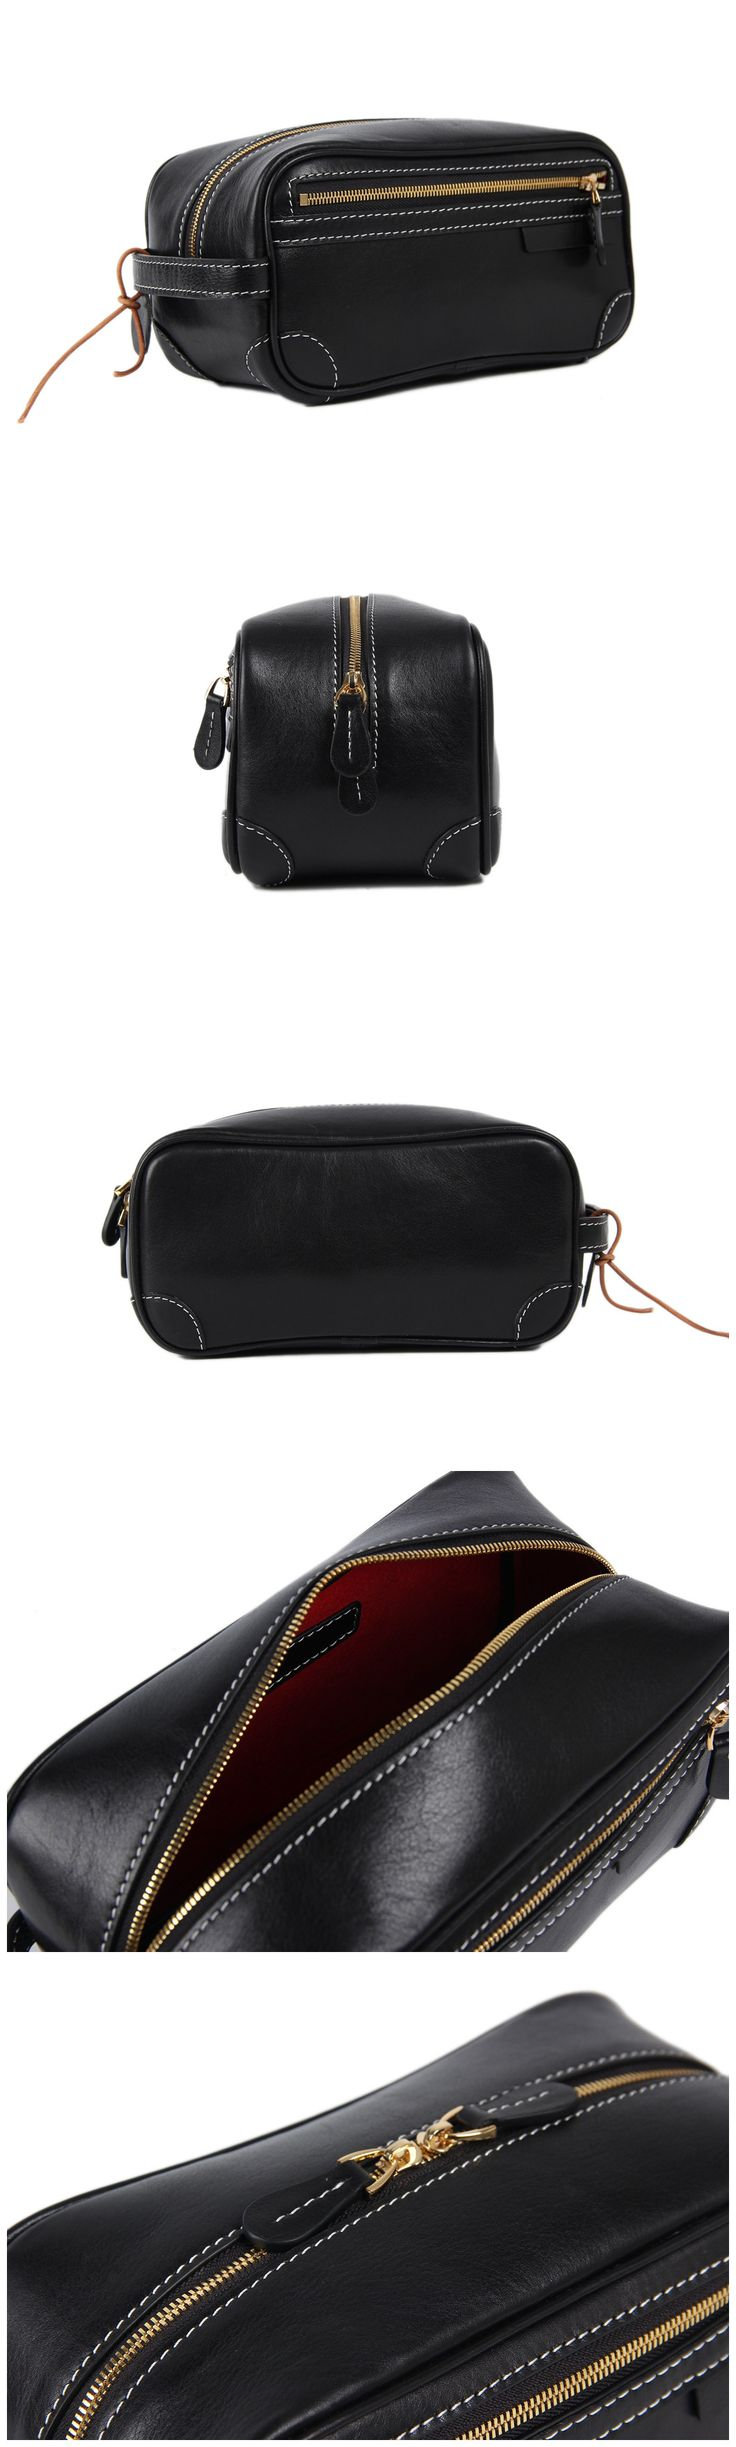 Leather Pouch Bag Clutch Bag Comestic Bag